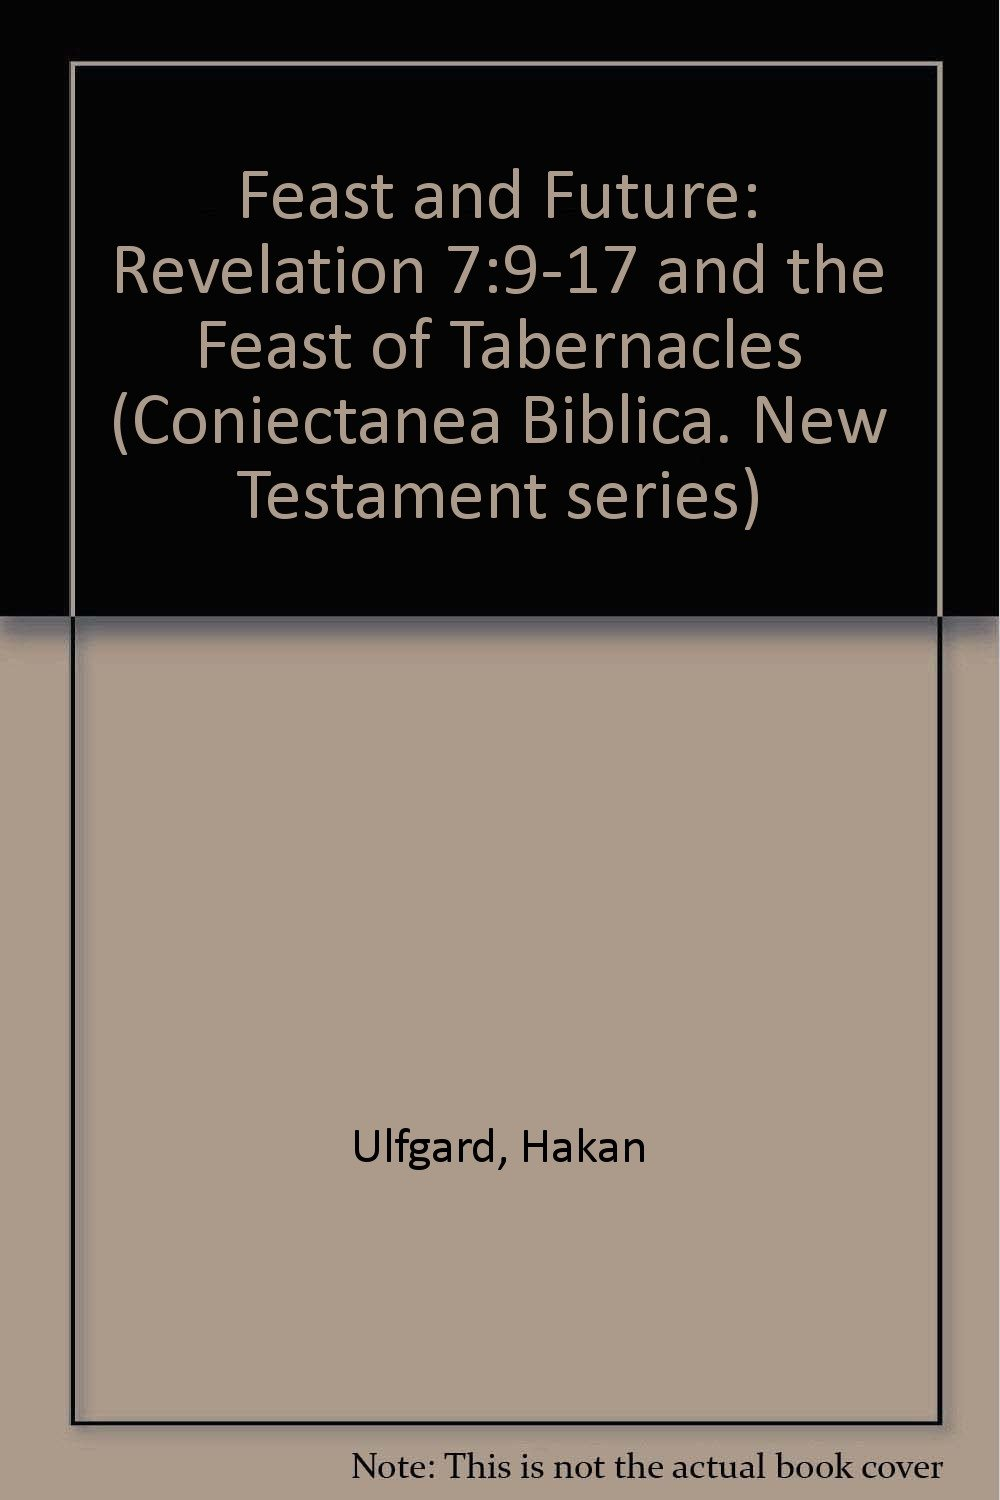 Feast and Future: Revelation 7:9-17 and the Feast of Tabernacles